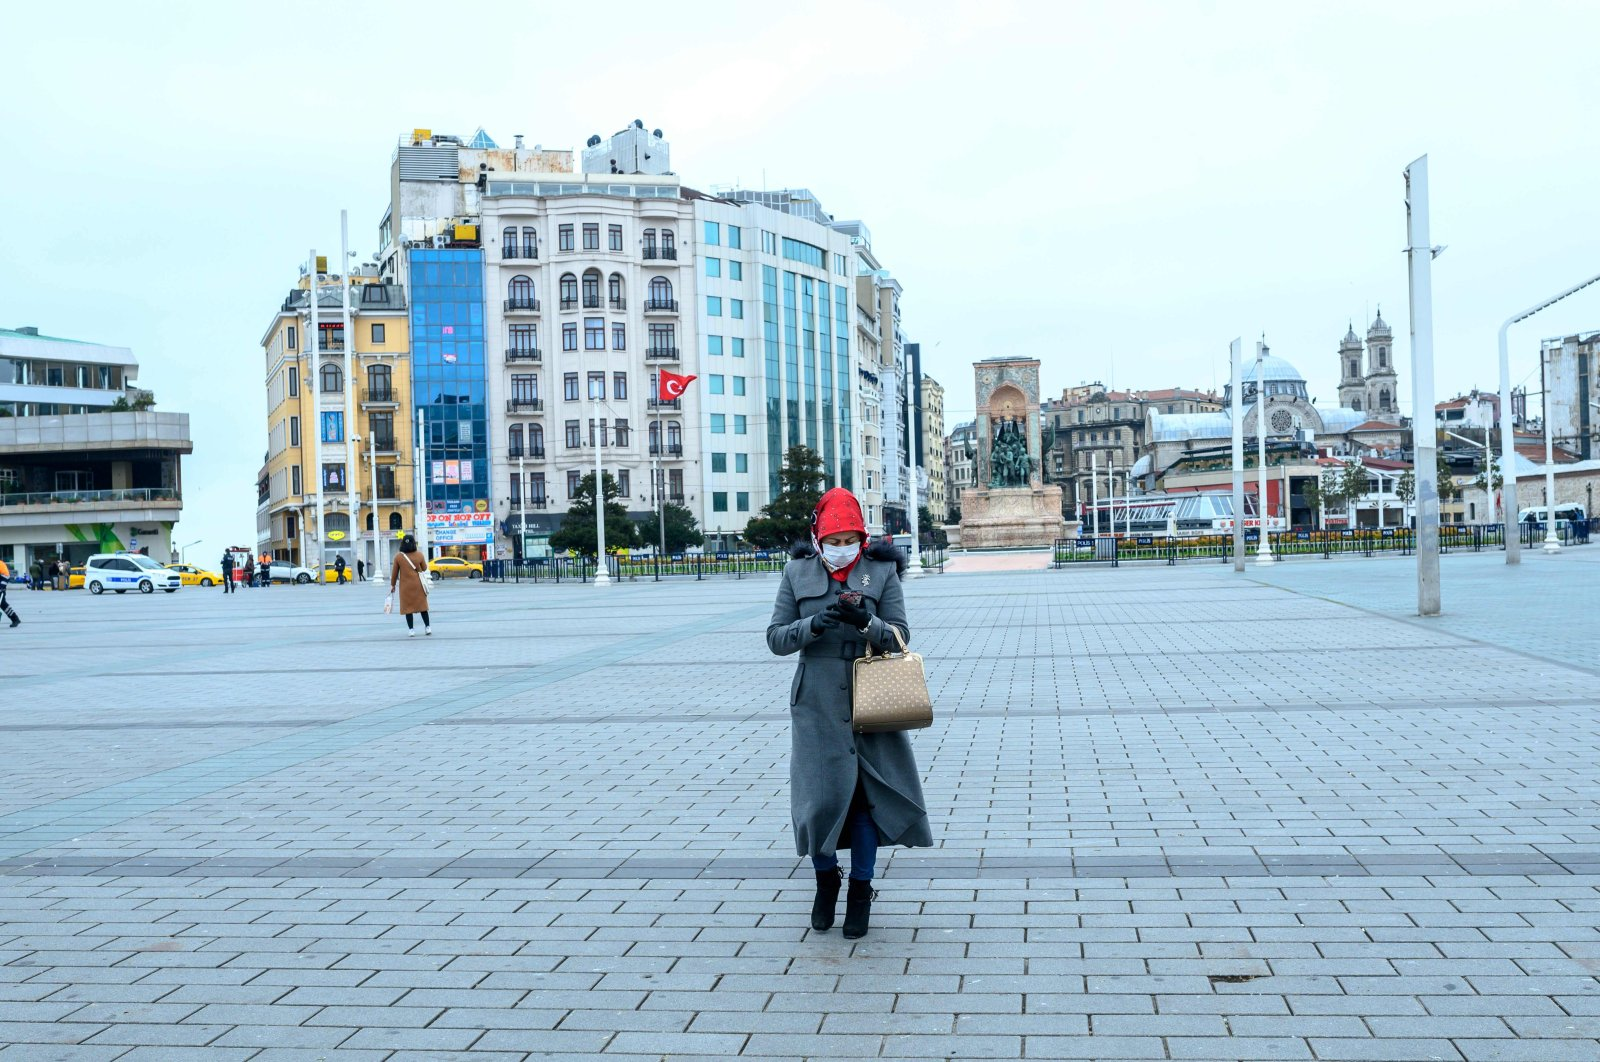 A woman wearing a mask walks across Taksim Square, Istanbul, Turkey, Thursday, March 26, 2020. (AFP Photo)